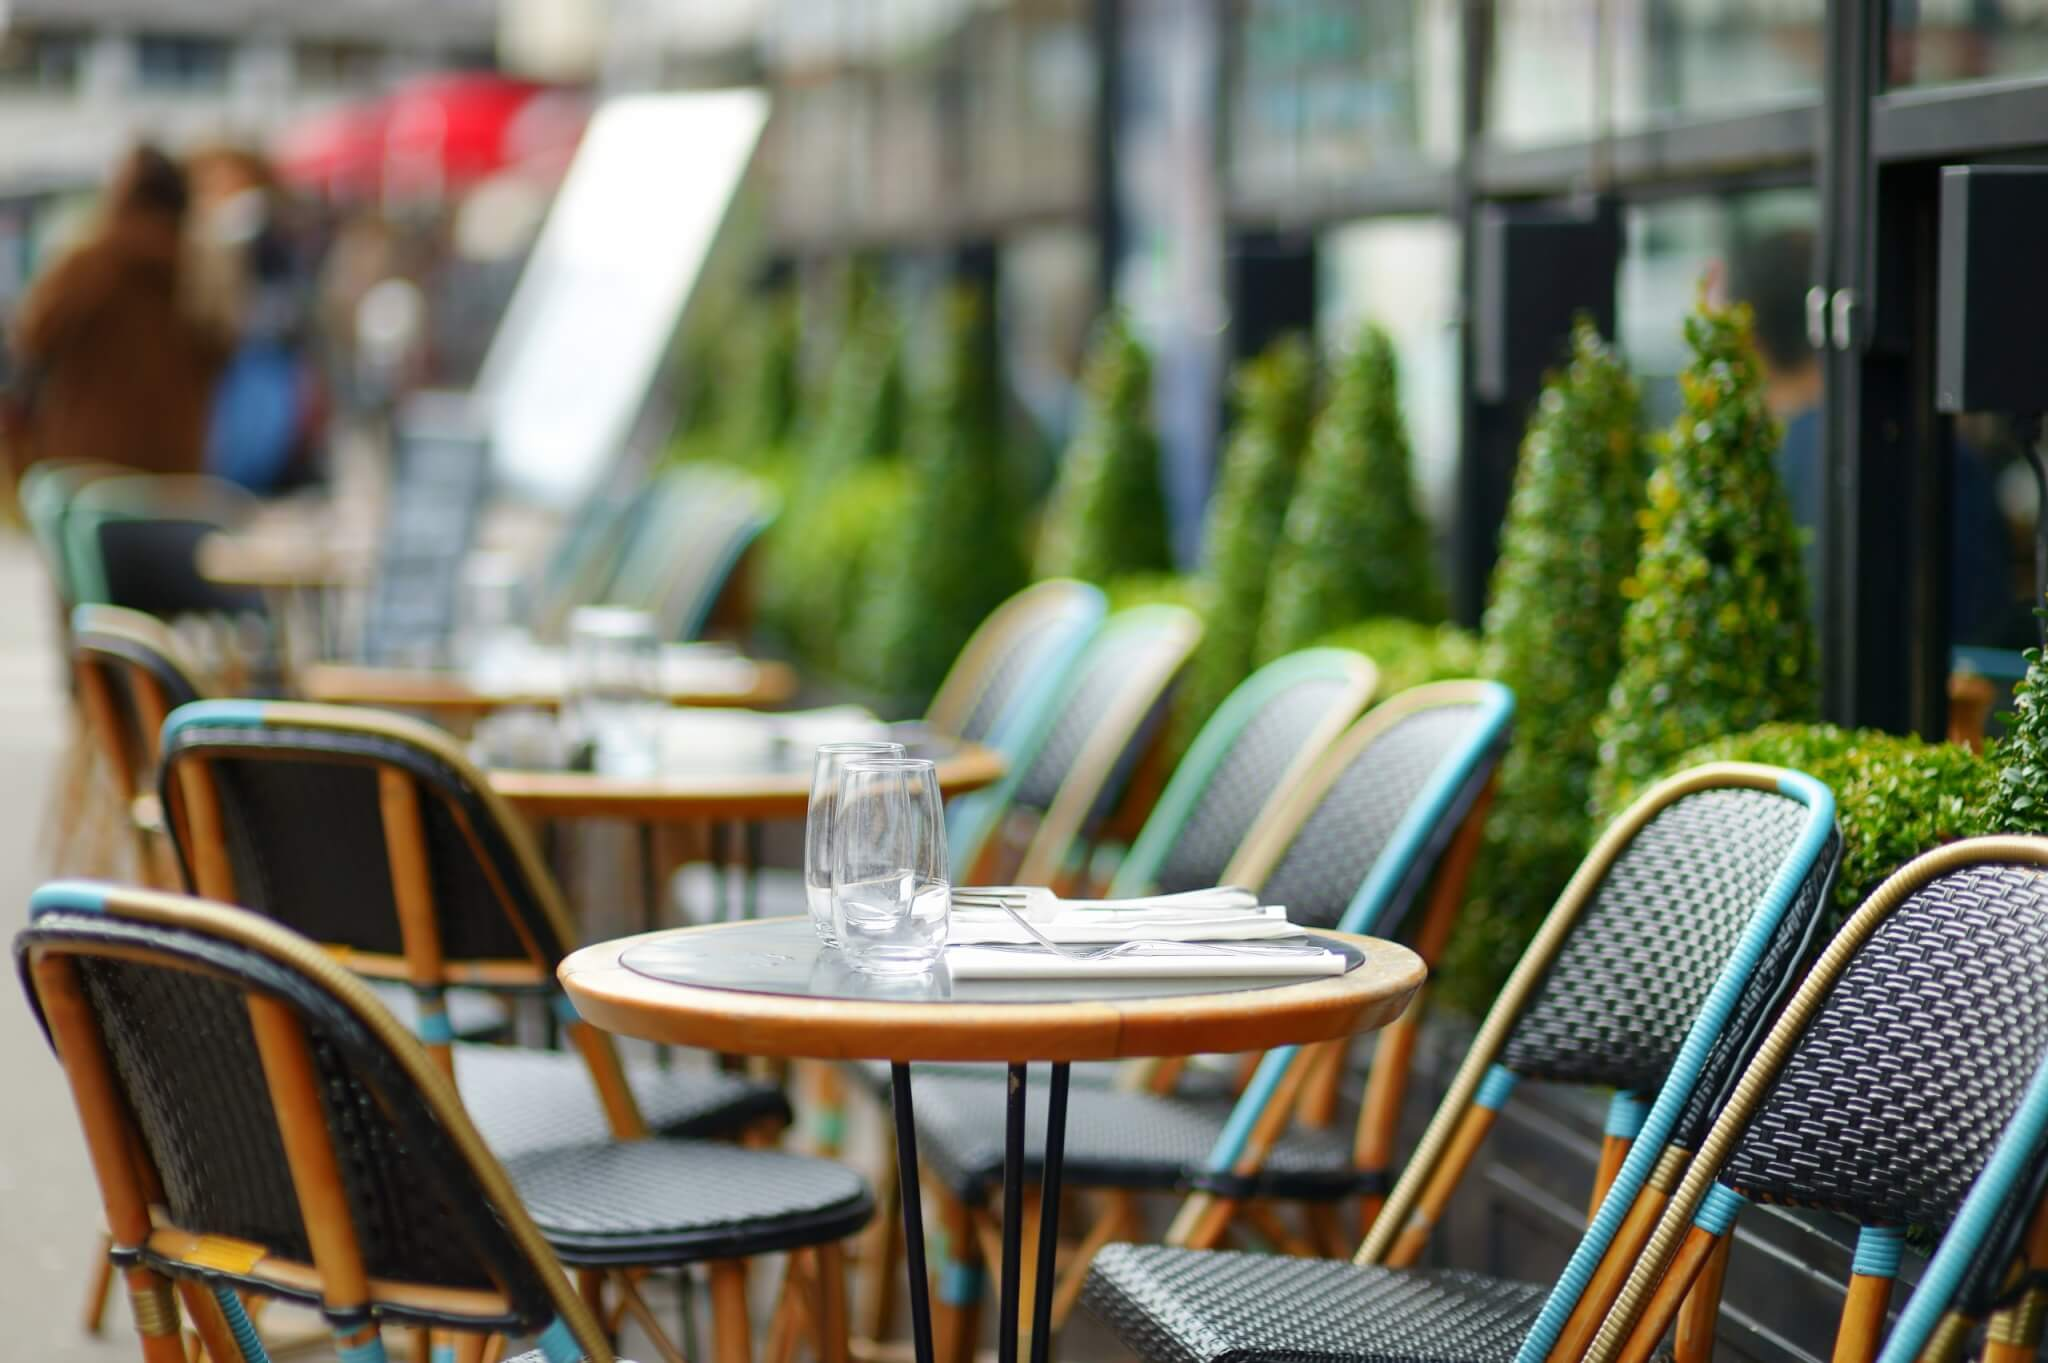 Robert Botkai features in Forecourt Trader discussing the Business and Planning Bill and the relaxation of laws around outside tables and chairs and alcohol off sales